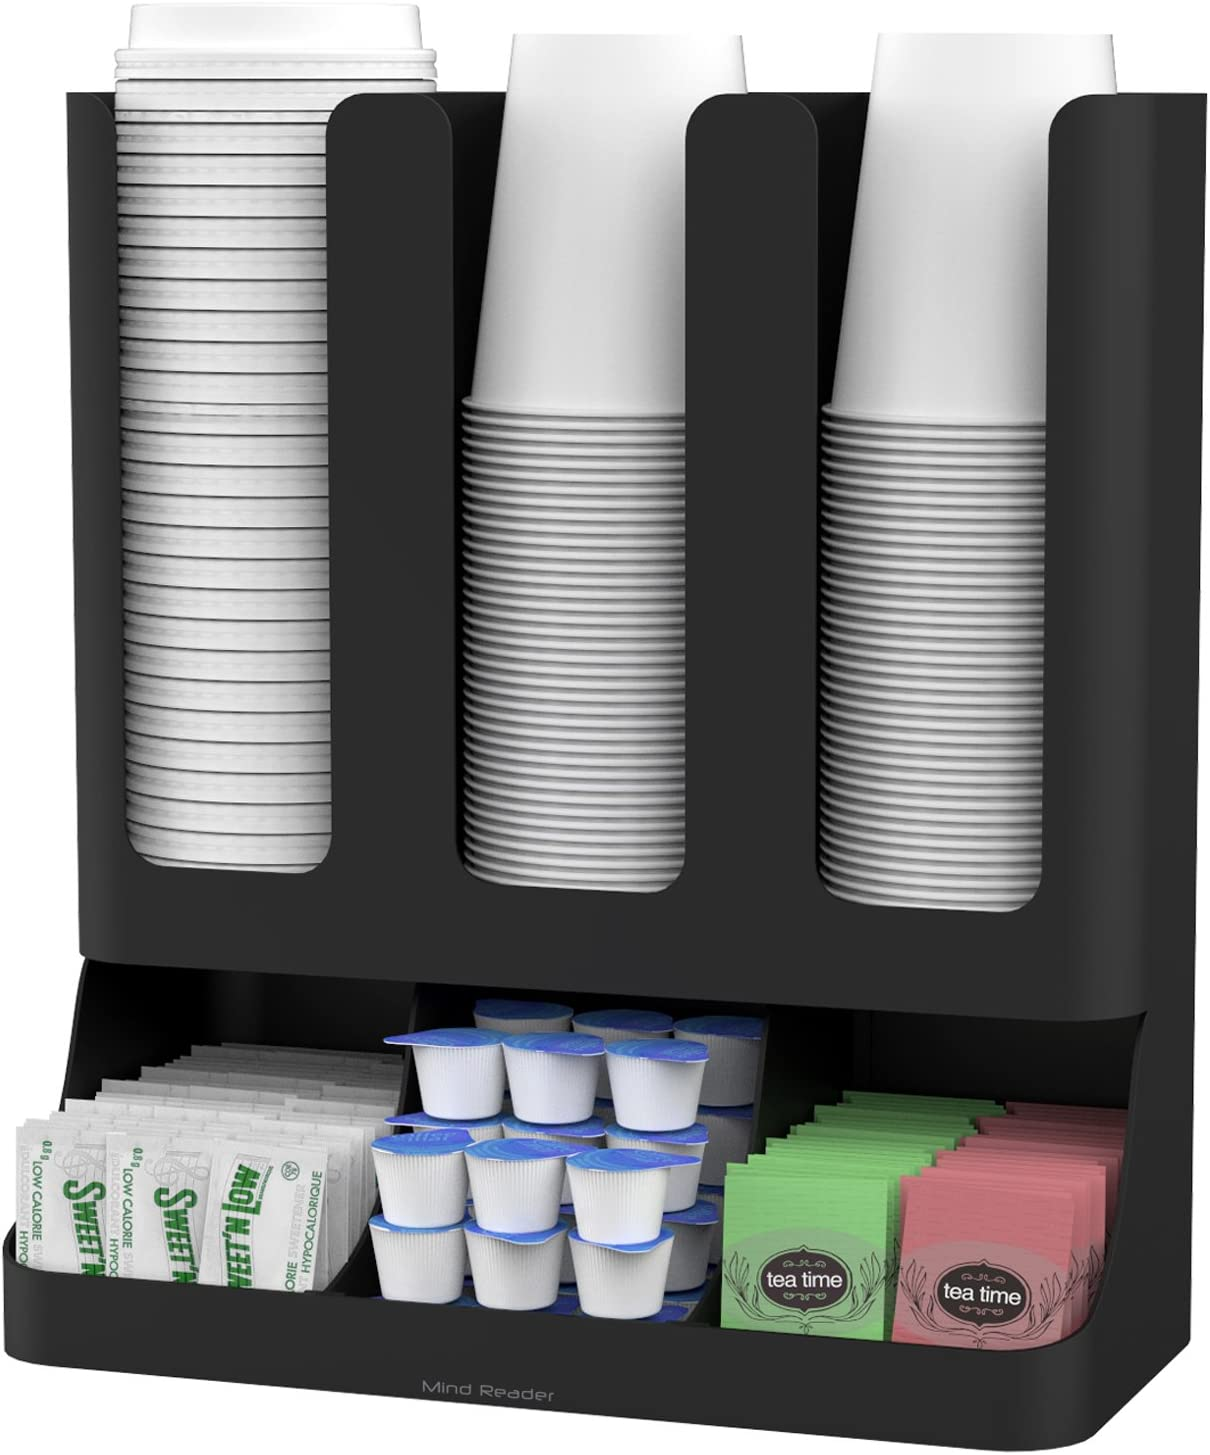 Mind Reader 6 Compartment Upright Breakroom Coffee Condiment And Cup Storage Organizer Black Amazon Co Uk Kitchen Home